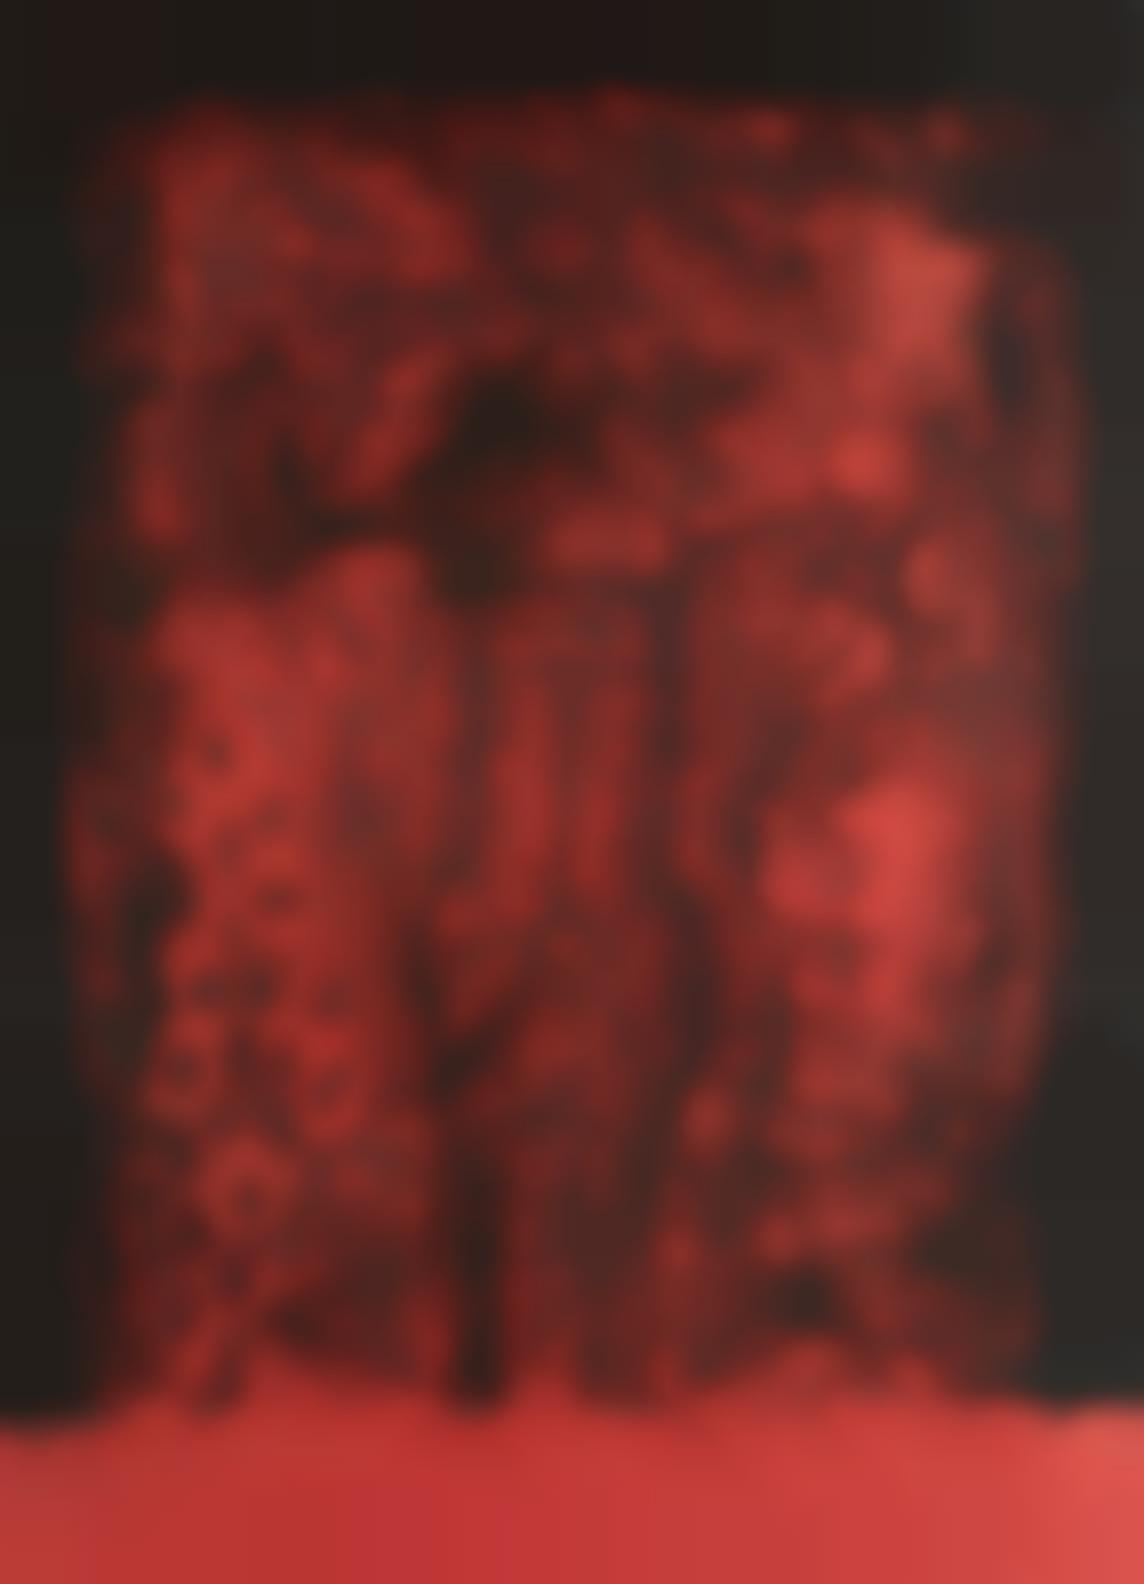 Rufino Tamayo-Affiche Avant Lettre, From Mujers Suite (P.122)-1969